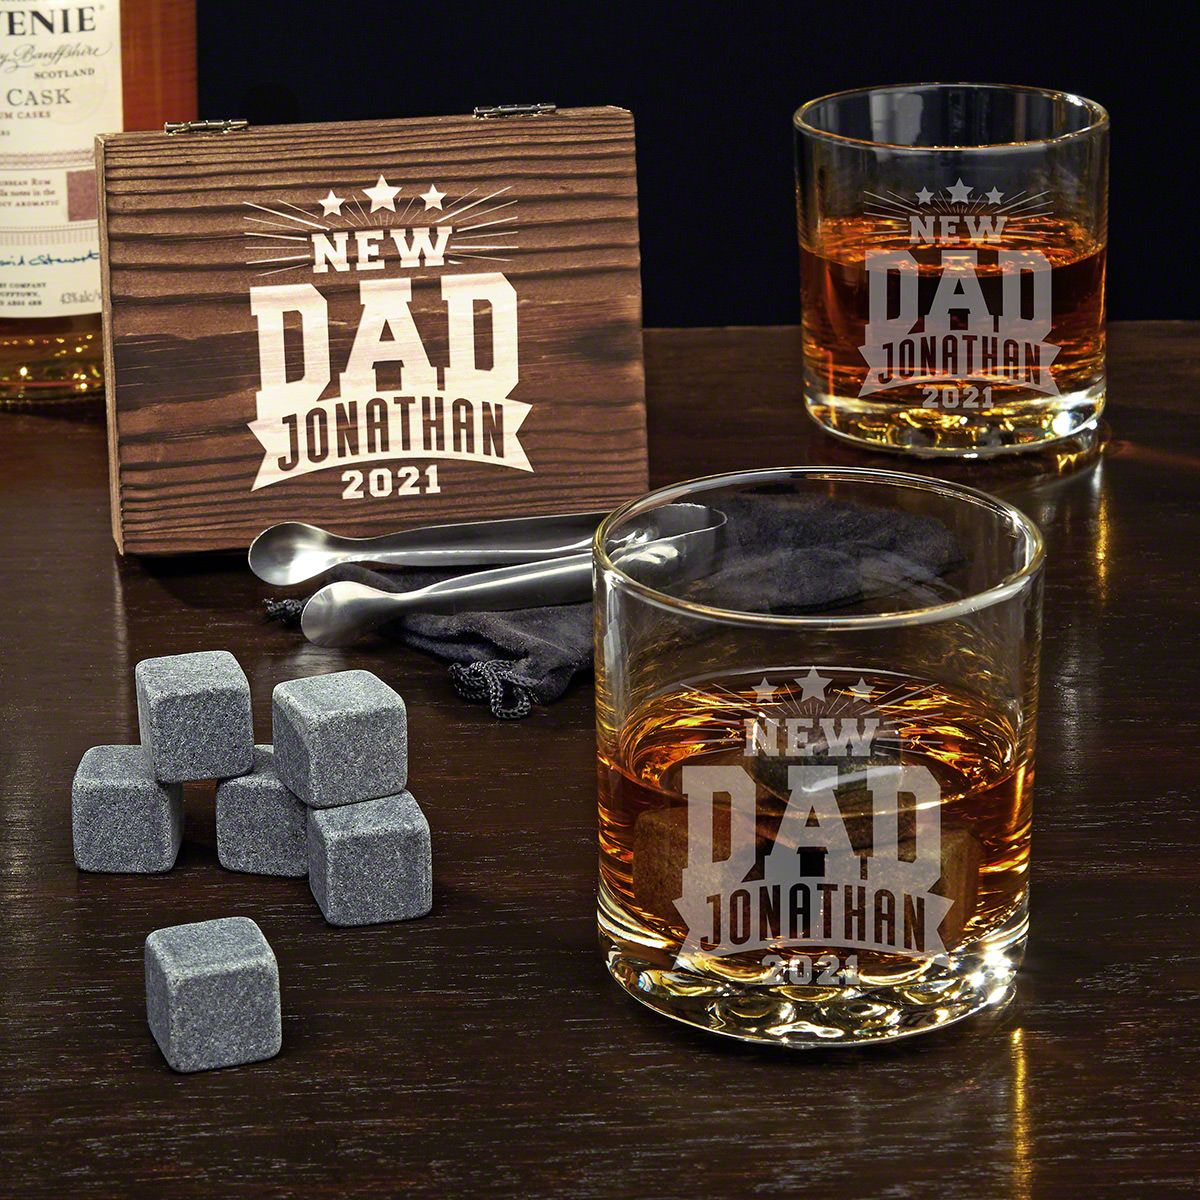 Rockstar New Dad Custom Whiskey Gifts for New Dads